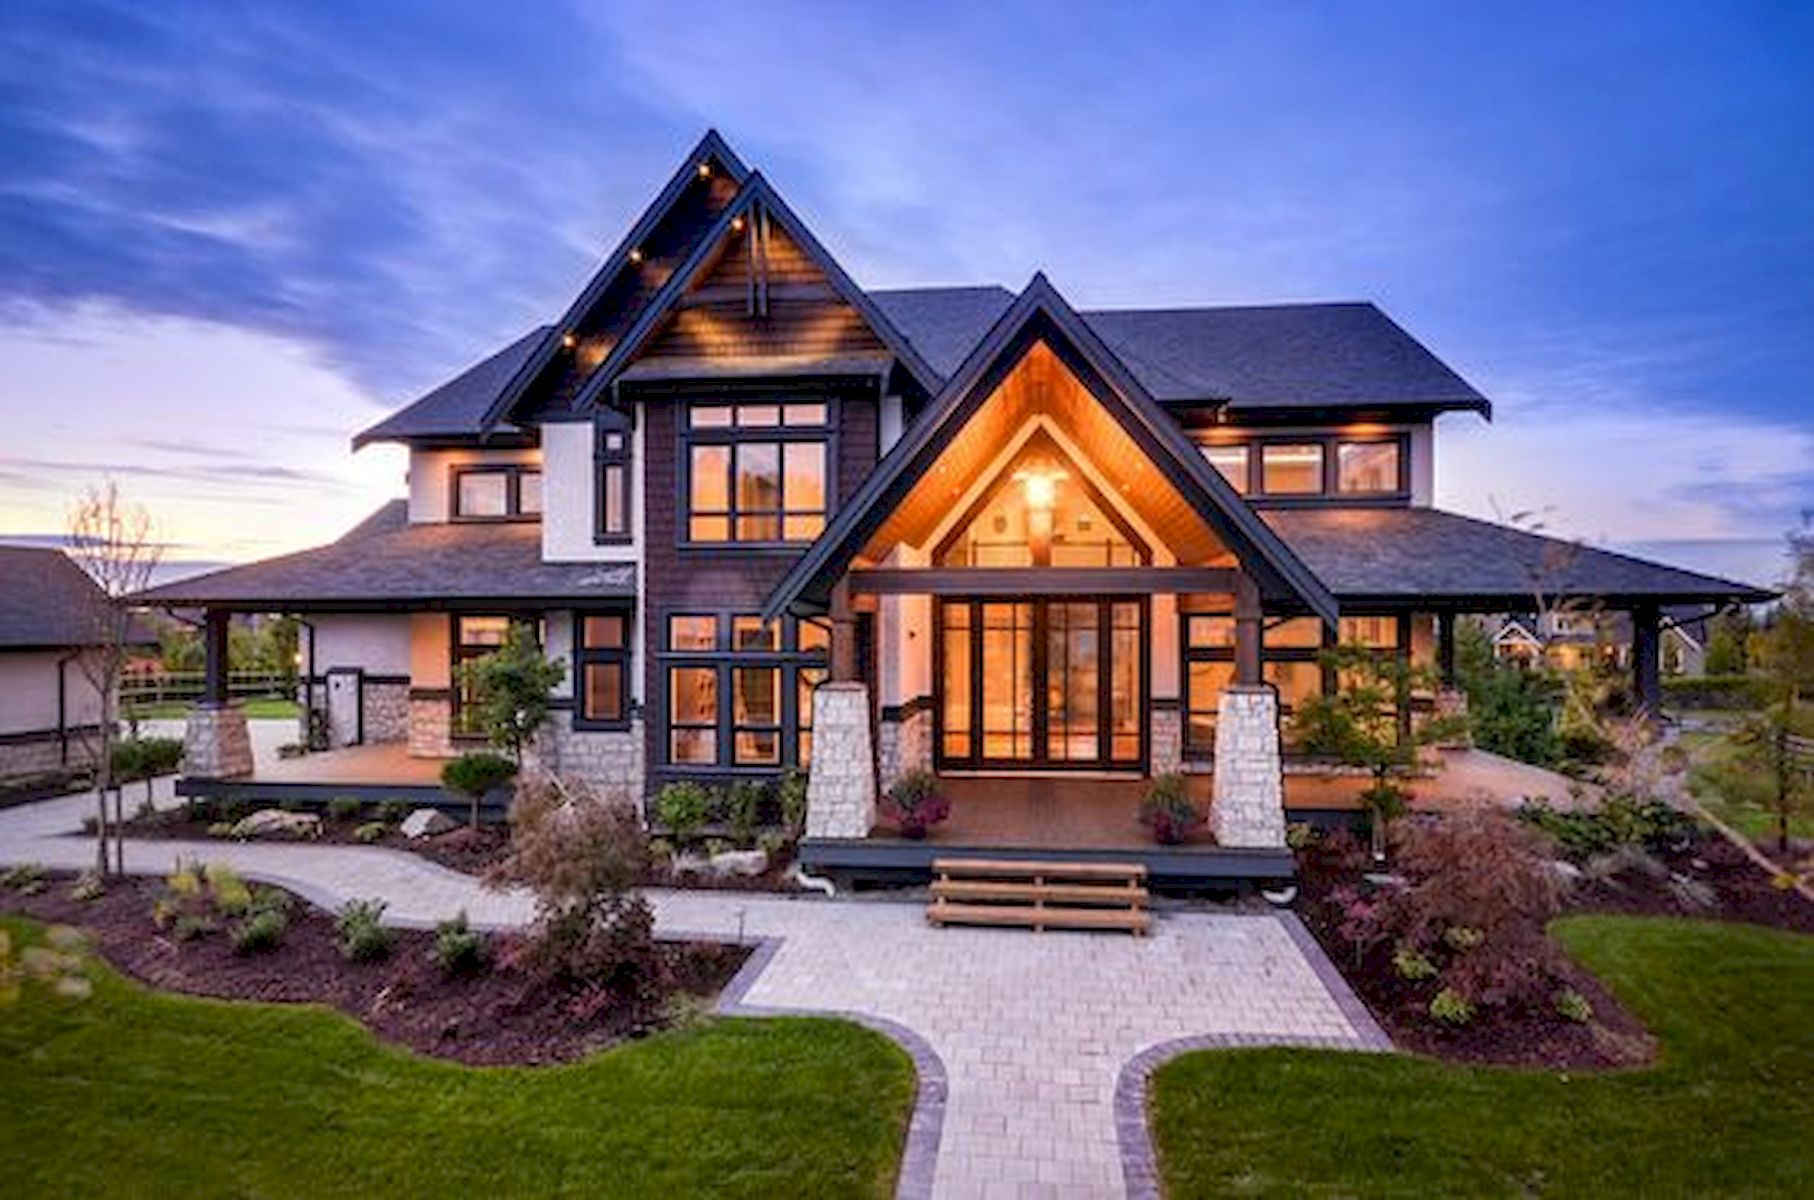 70 Most Popular Dream House Exterior Design Ideas 41 Ideaboz